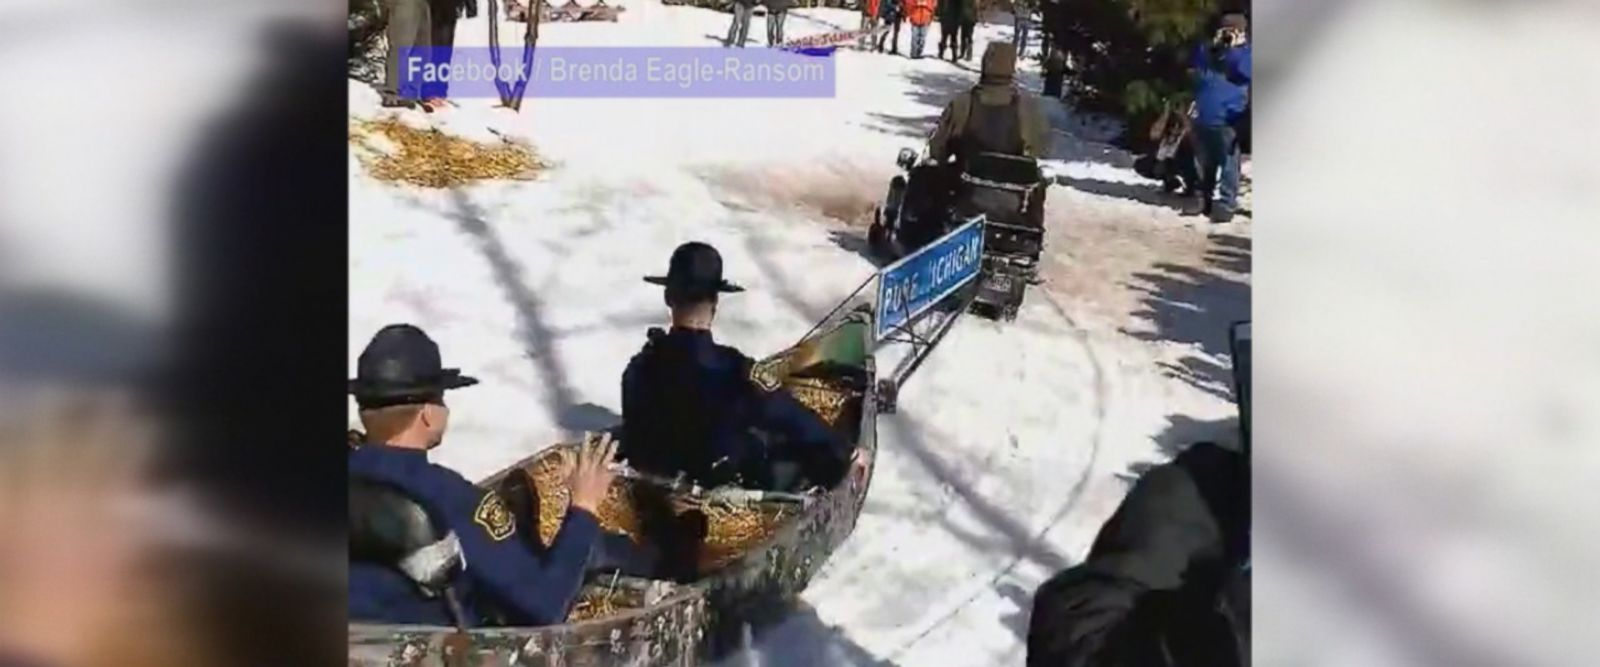 Two Michigan State Troopers took a ride through the snow in a canoe for charity.